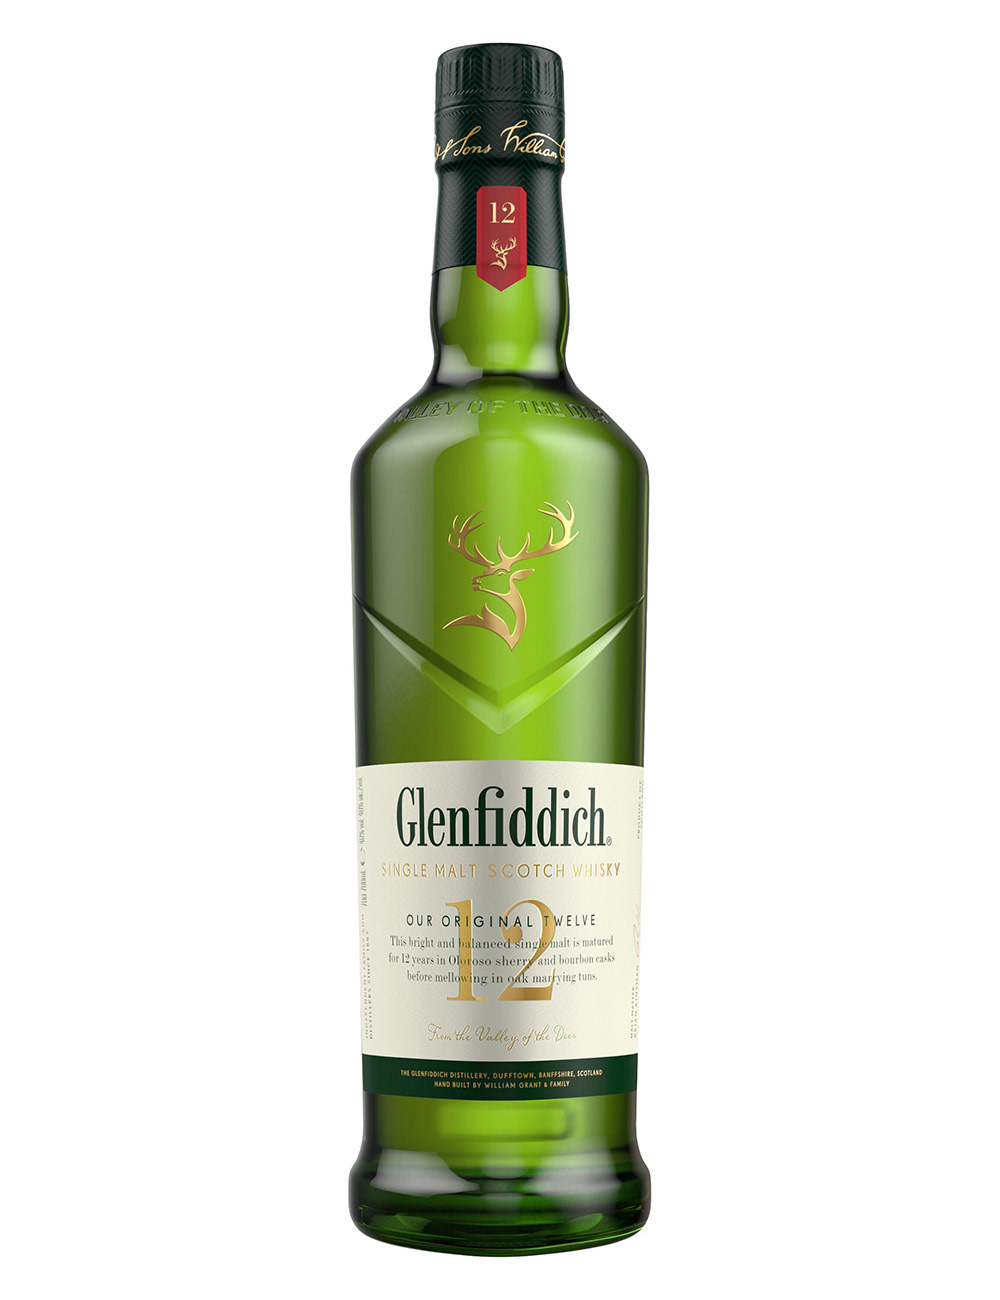 Glenfiddich Whisky: Single Malt Scotch Whisky - 12 to 50